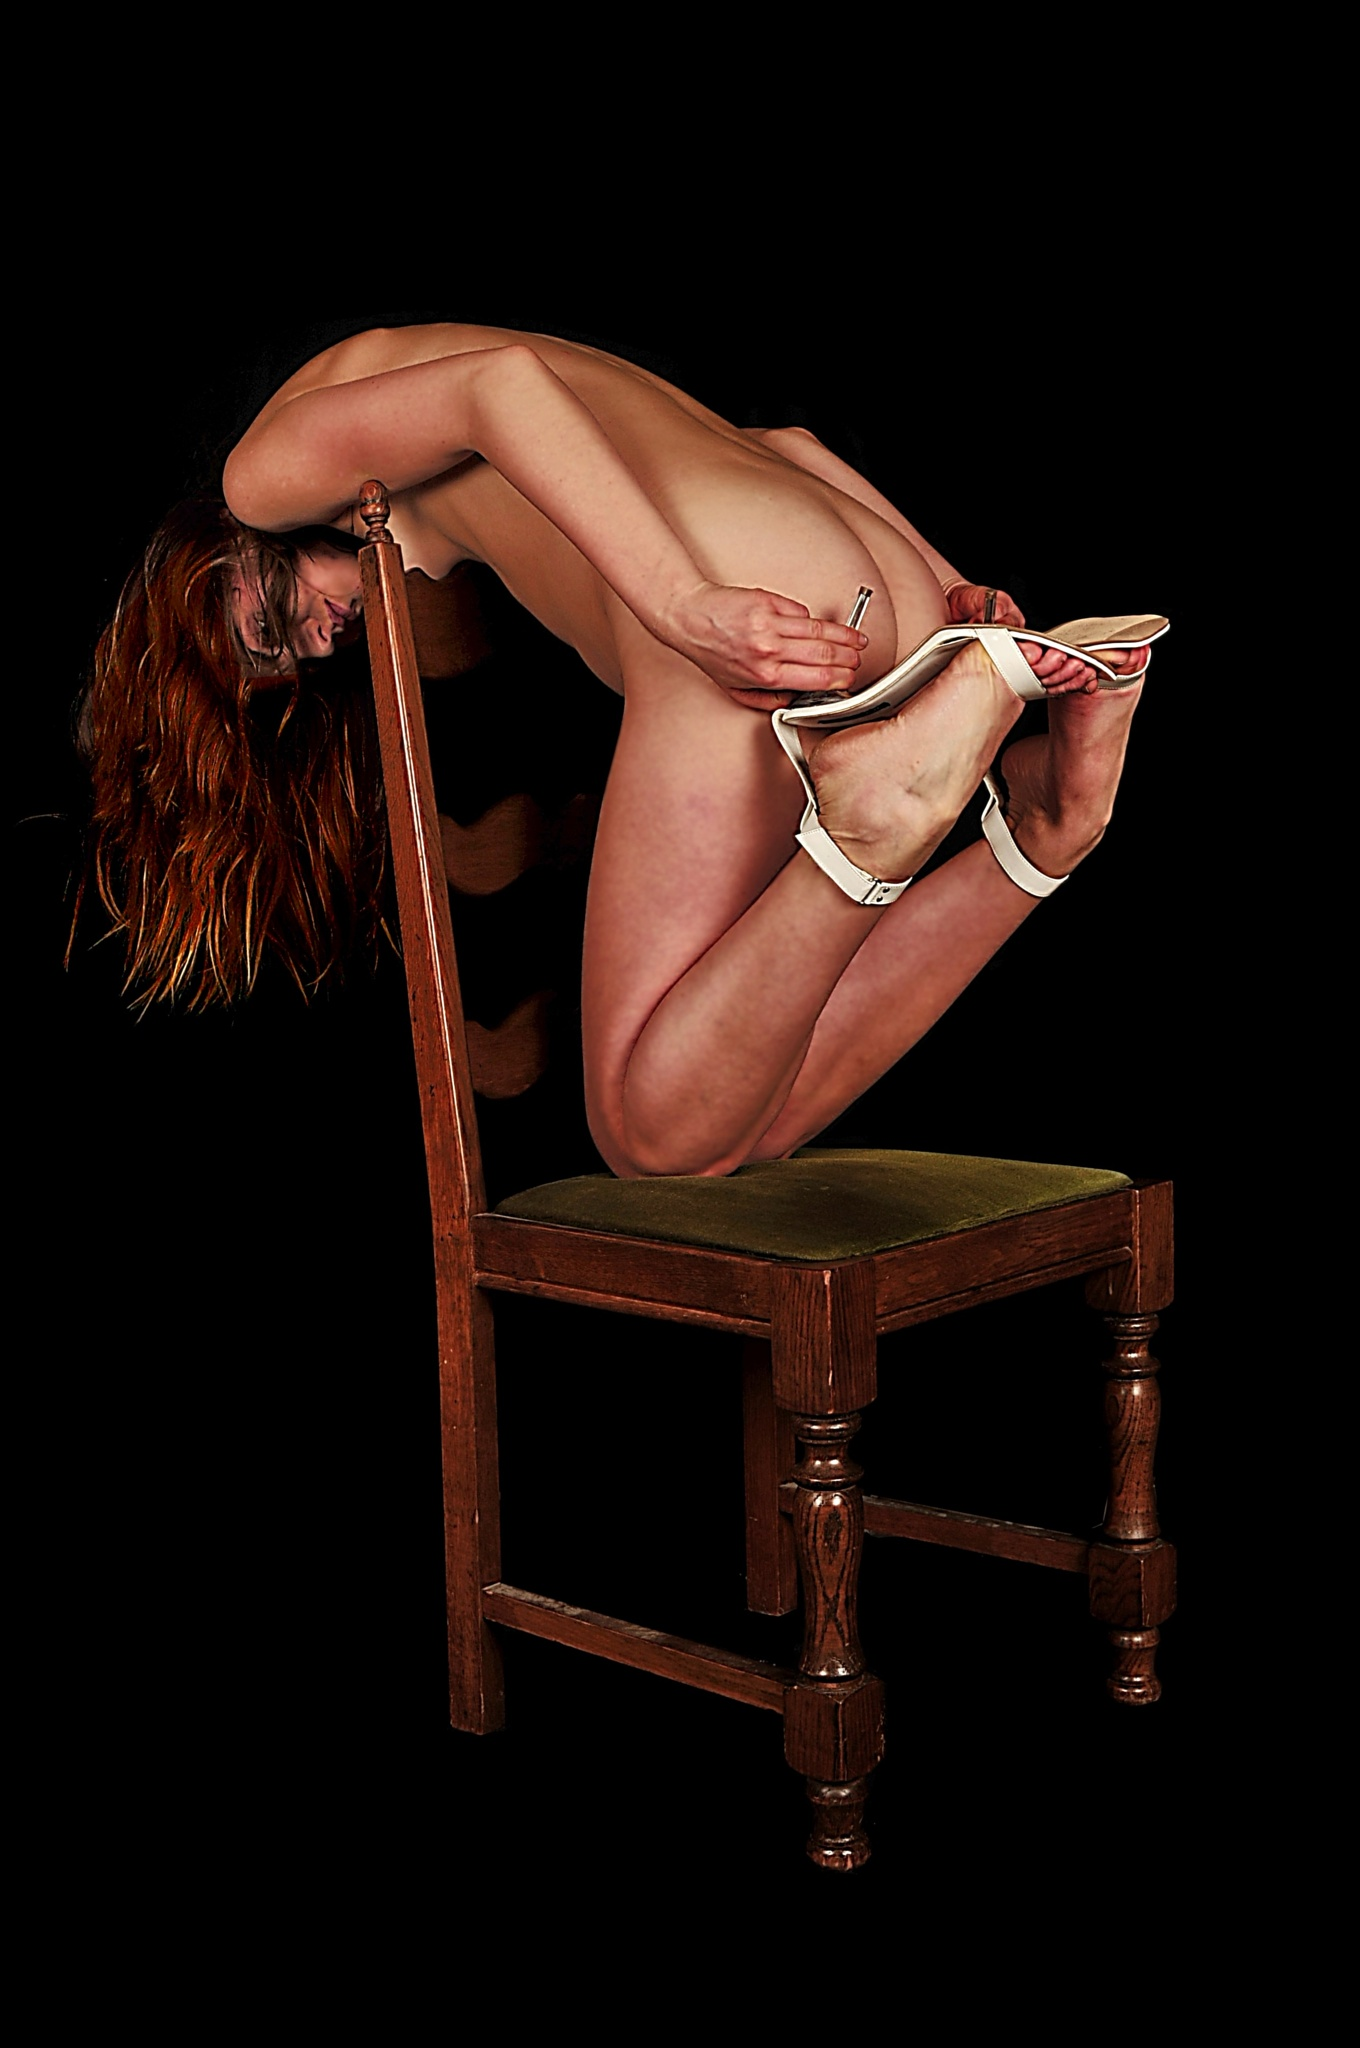 Kneeing on a chair by kiljanK